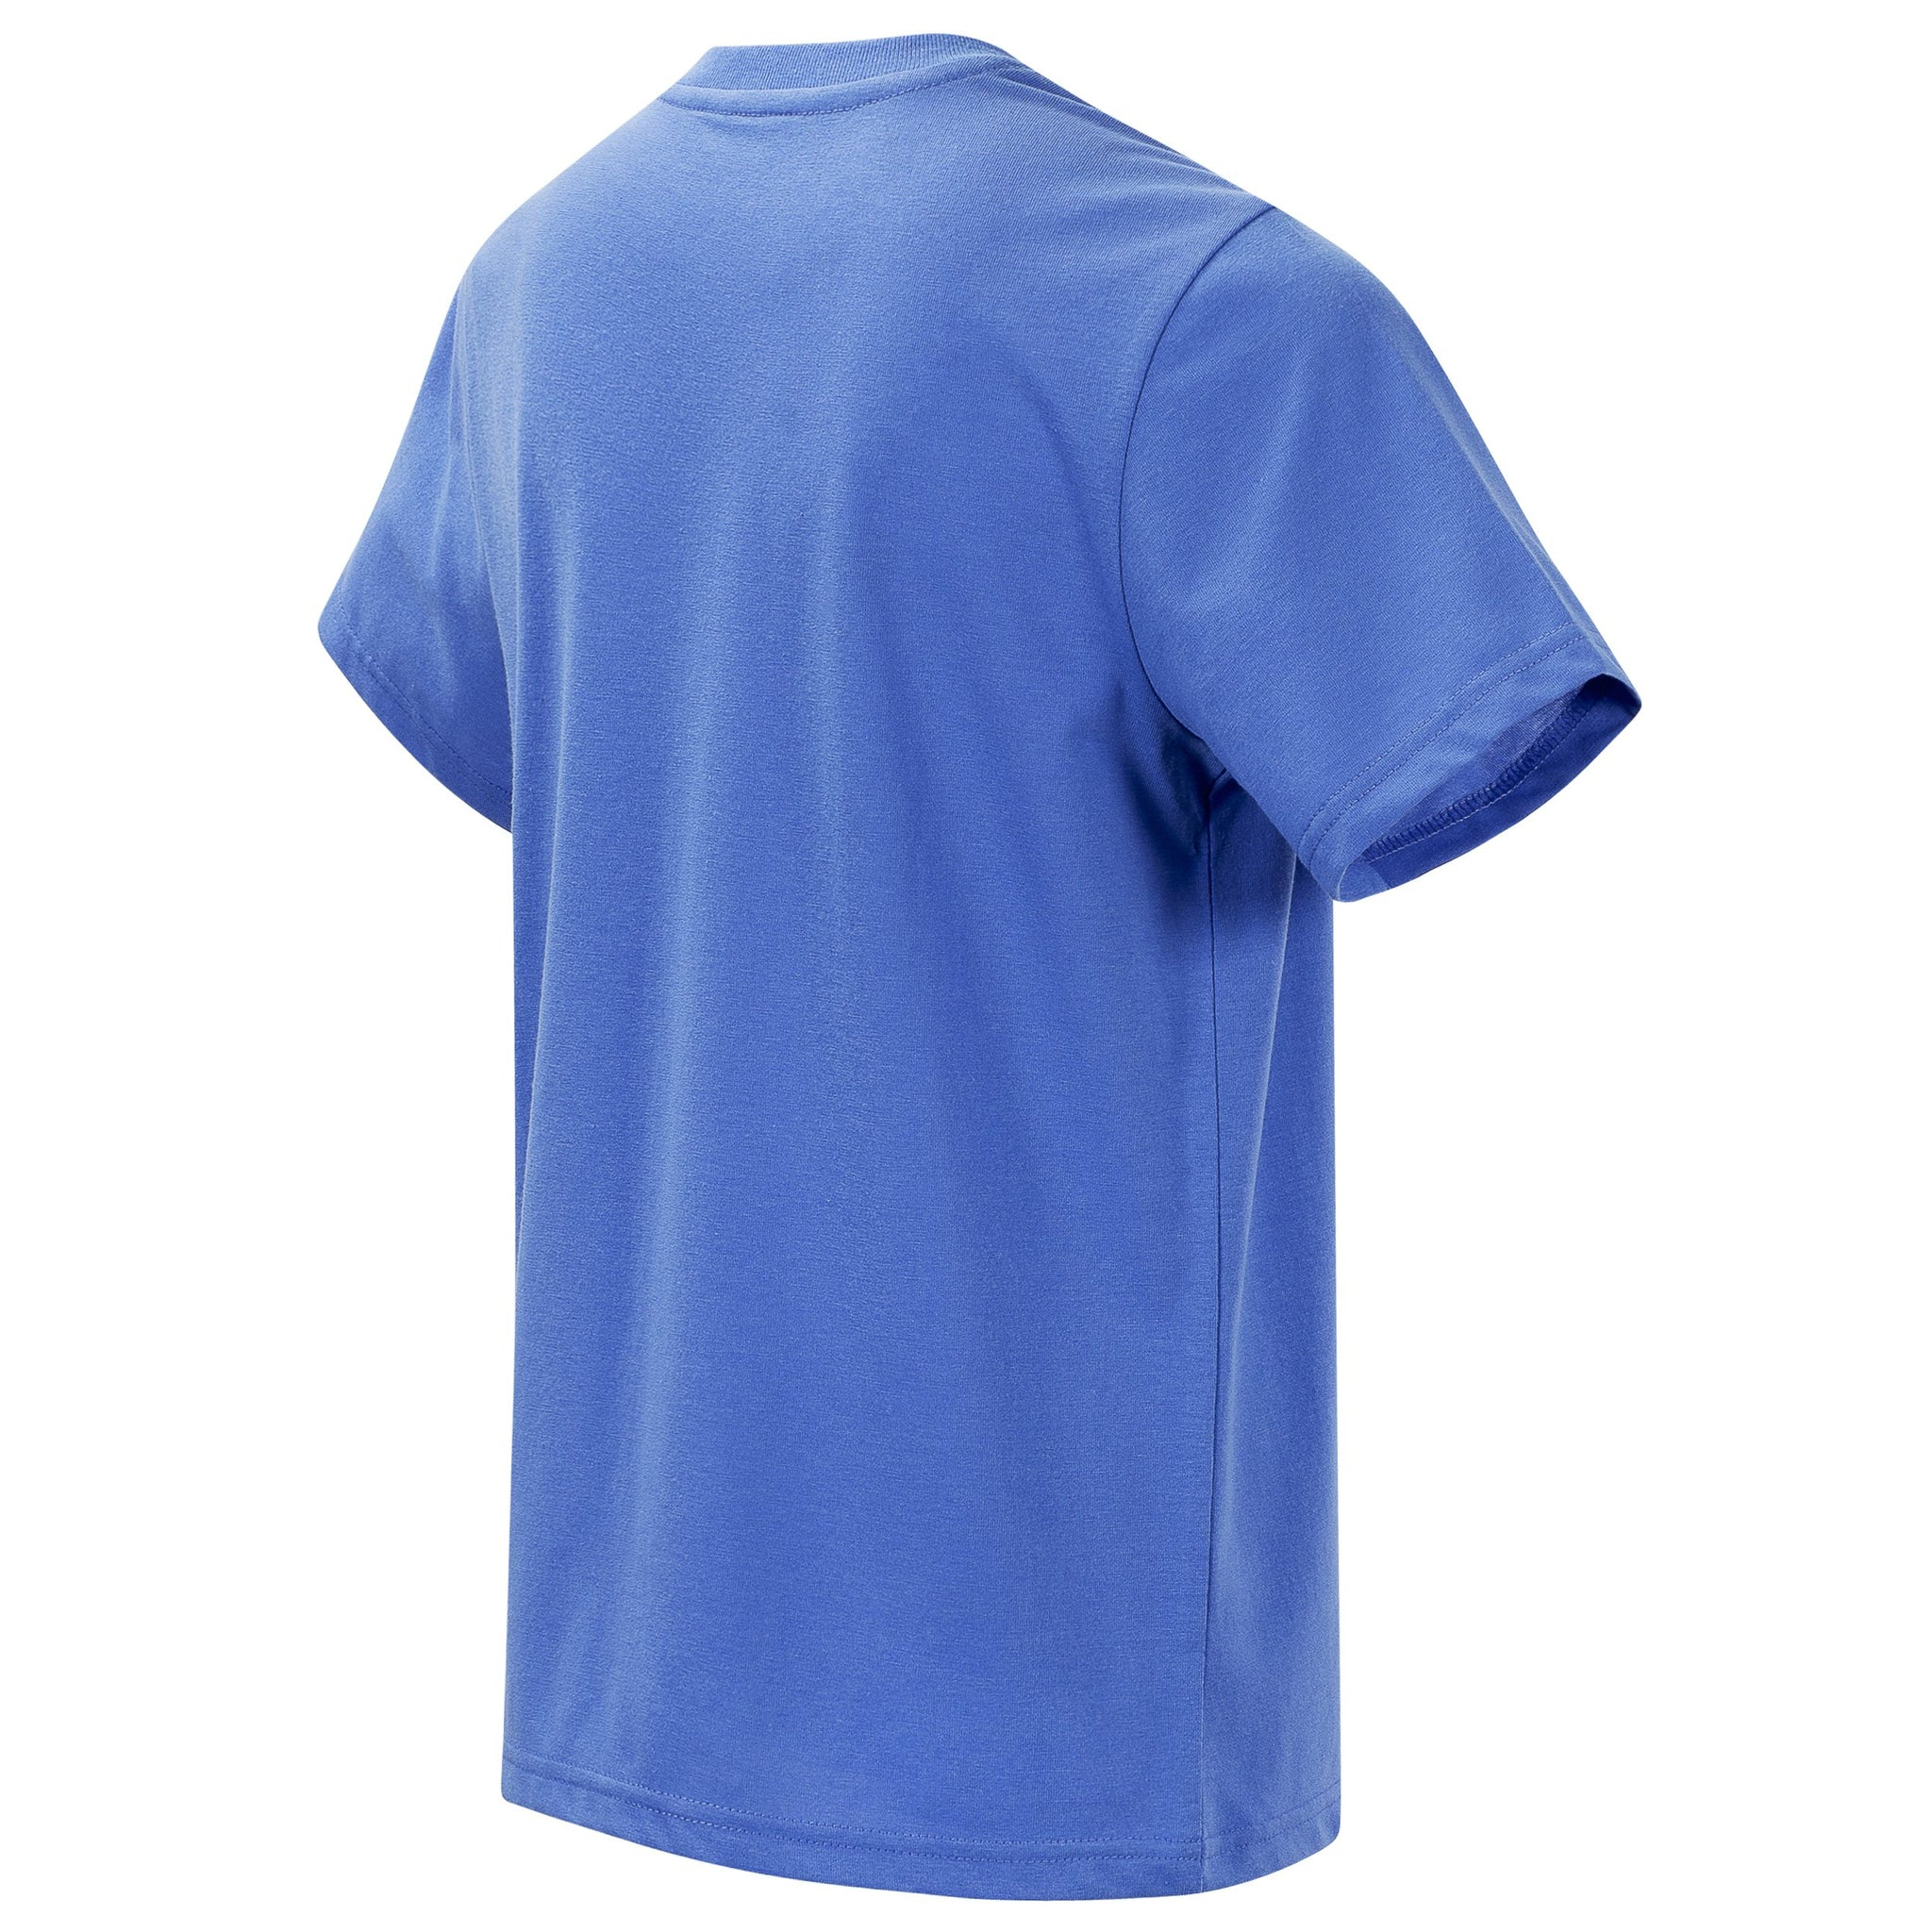 Boys' Lapis Blue Short Sleeve Graphic Tee